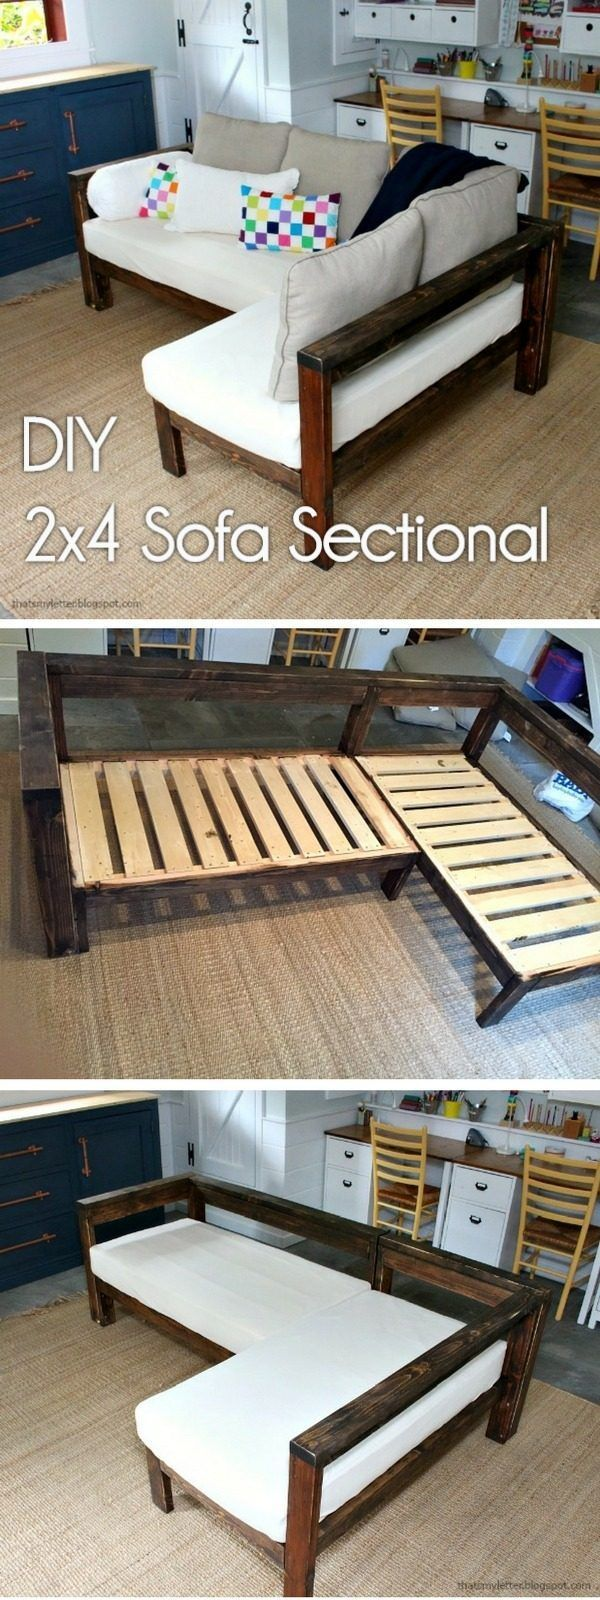 Check out how to make a #DIY #wooden small sectional from 2x4s #HomeDecorIdeas @istandarddesign